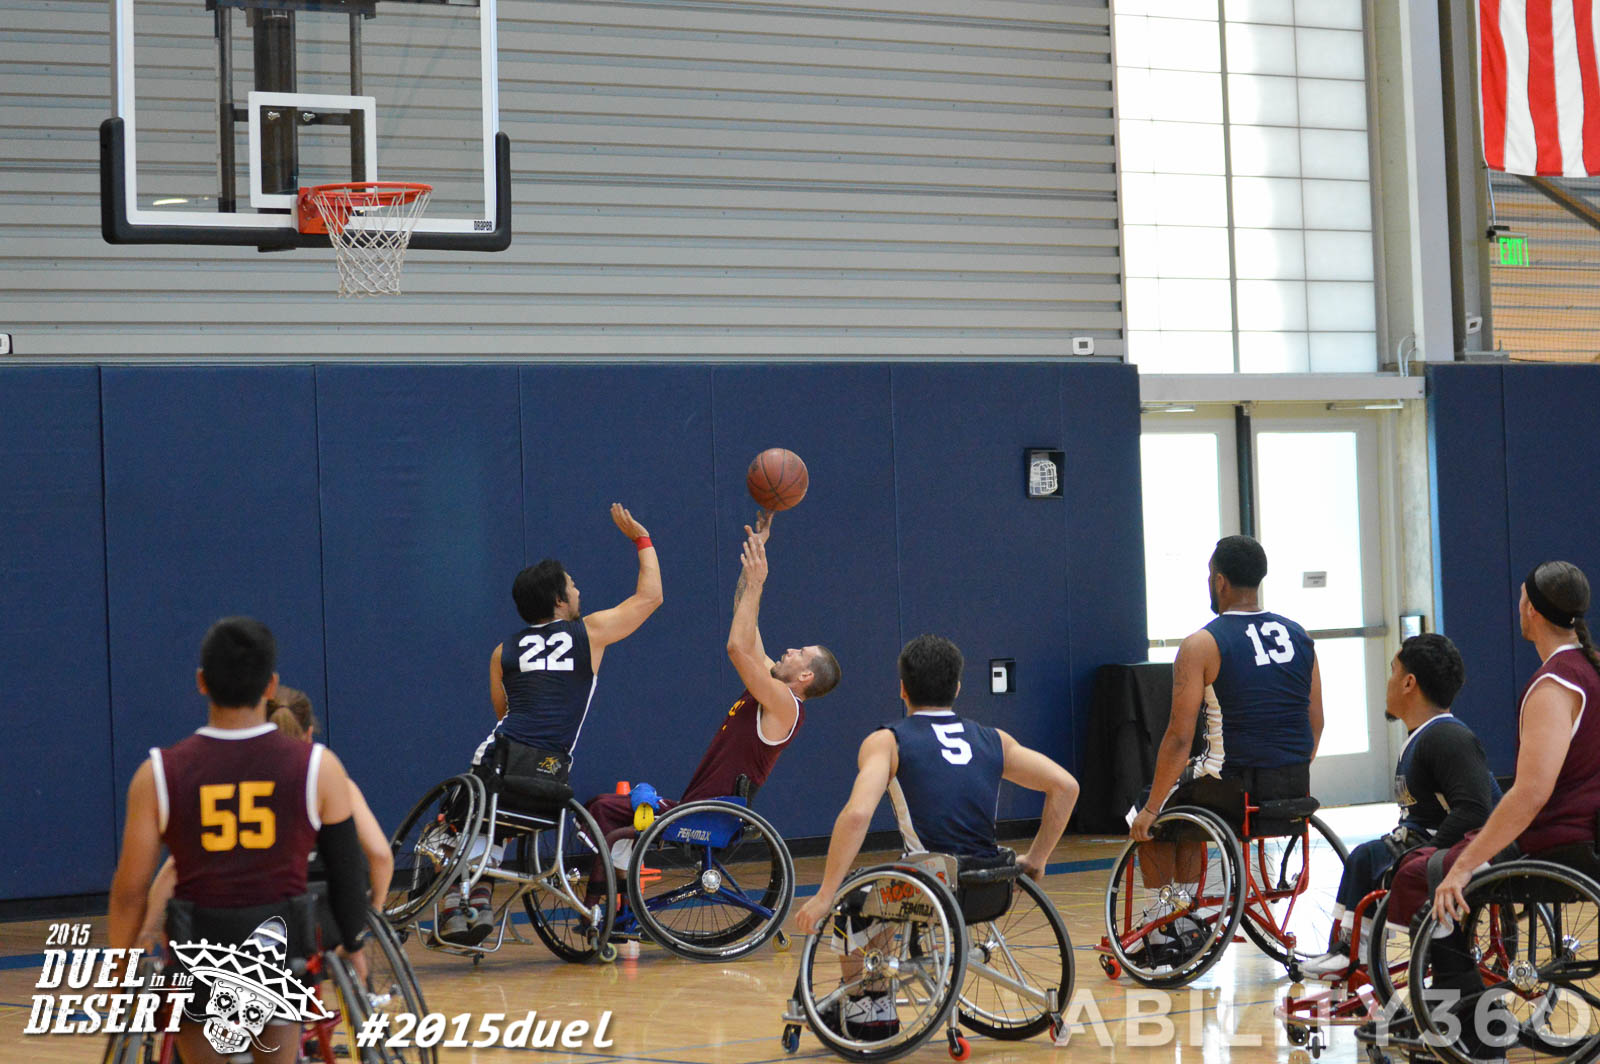 wheelchair basketball. opponent attempts to block a shot